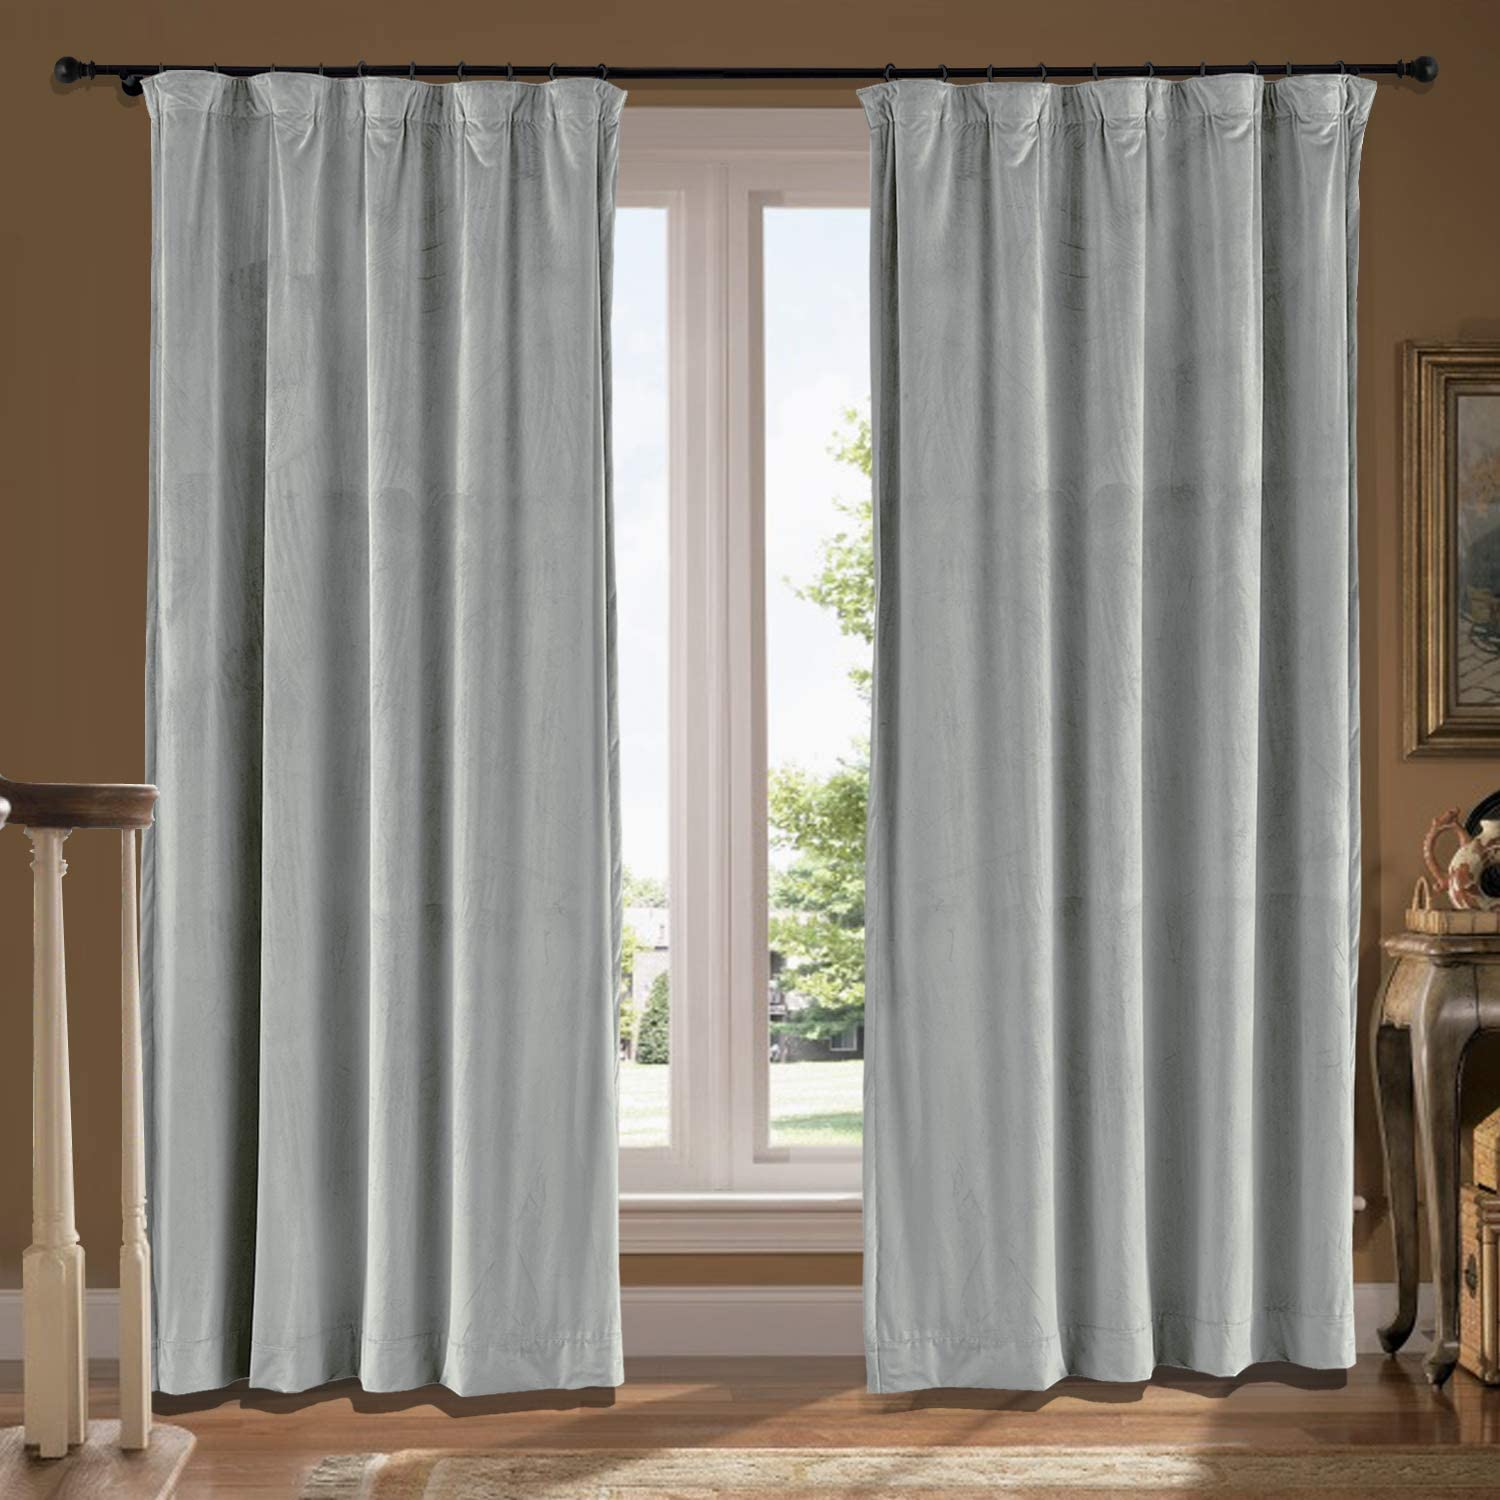 cololeaf Velvet Flat Hooks Curtain 公式通販 Solid ギフト Extra P Wide Door Patio